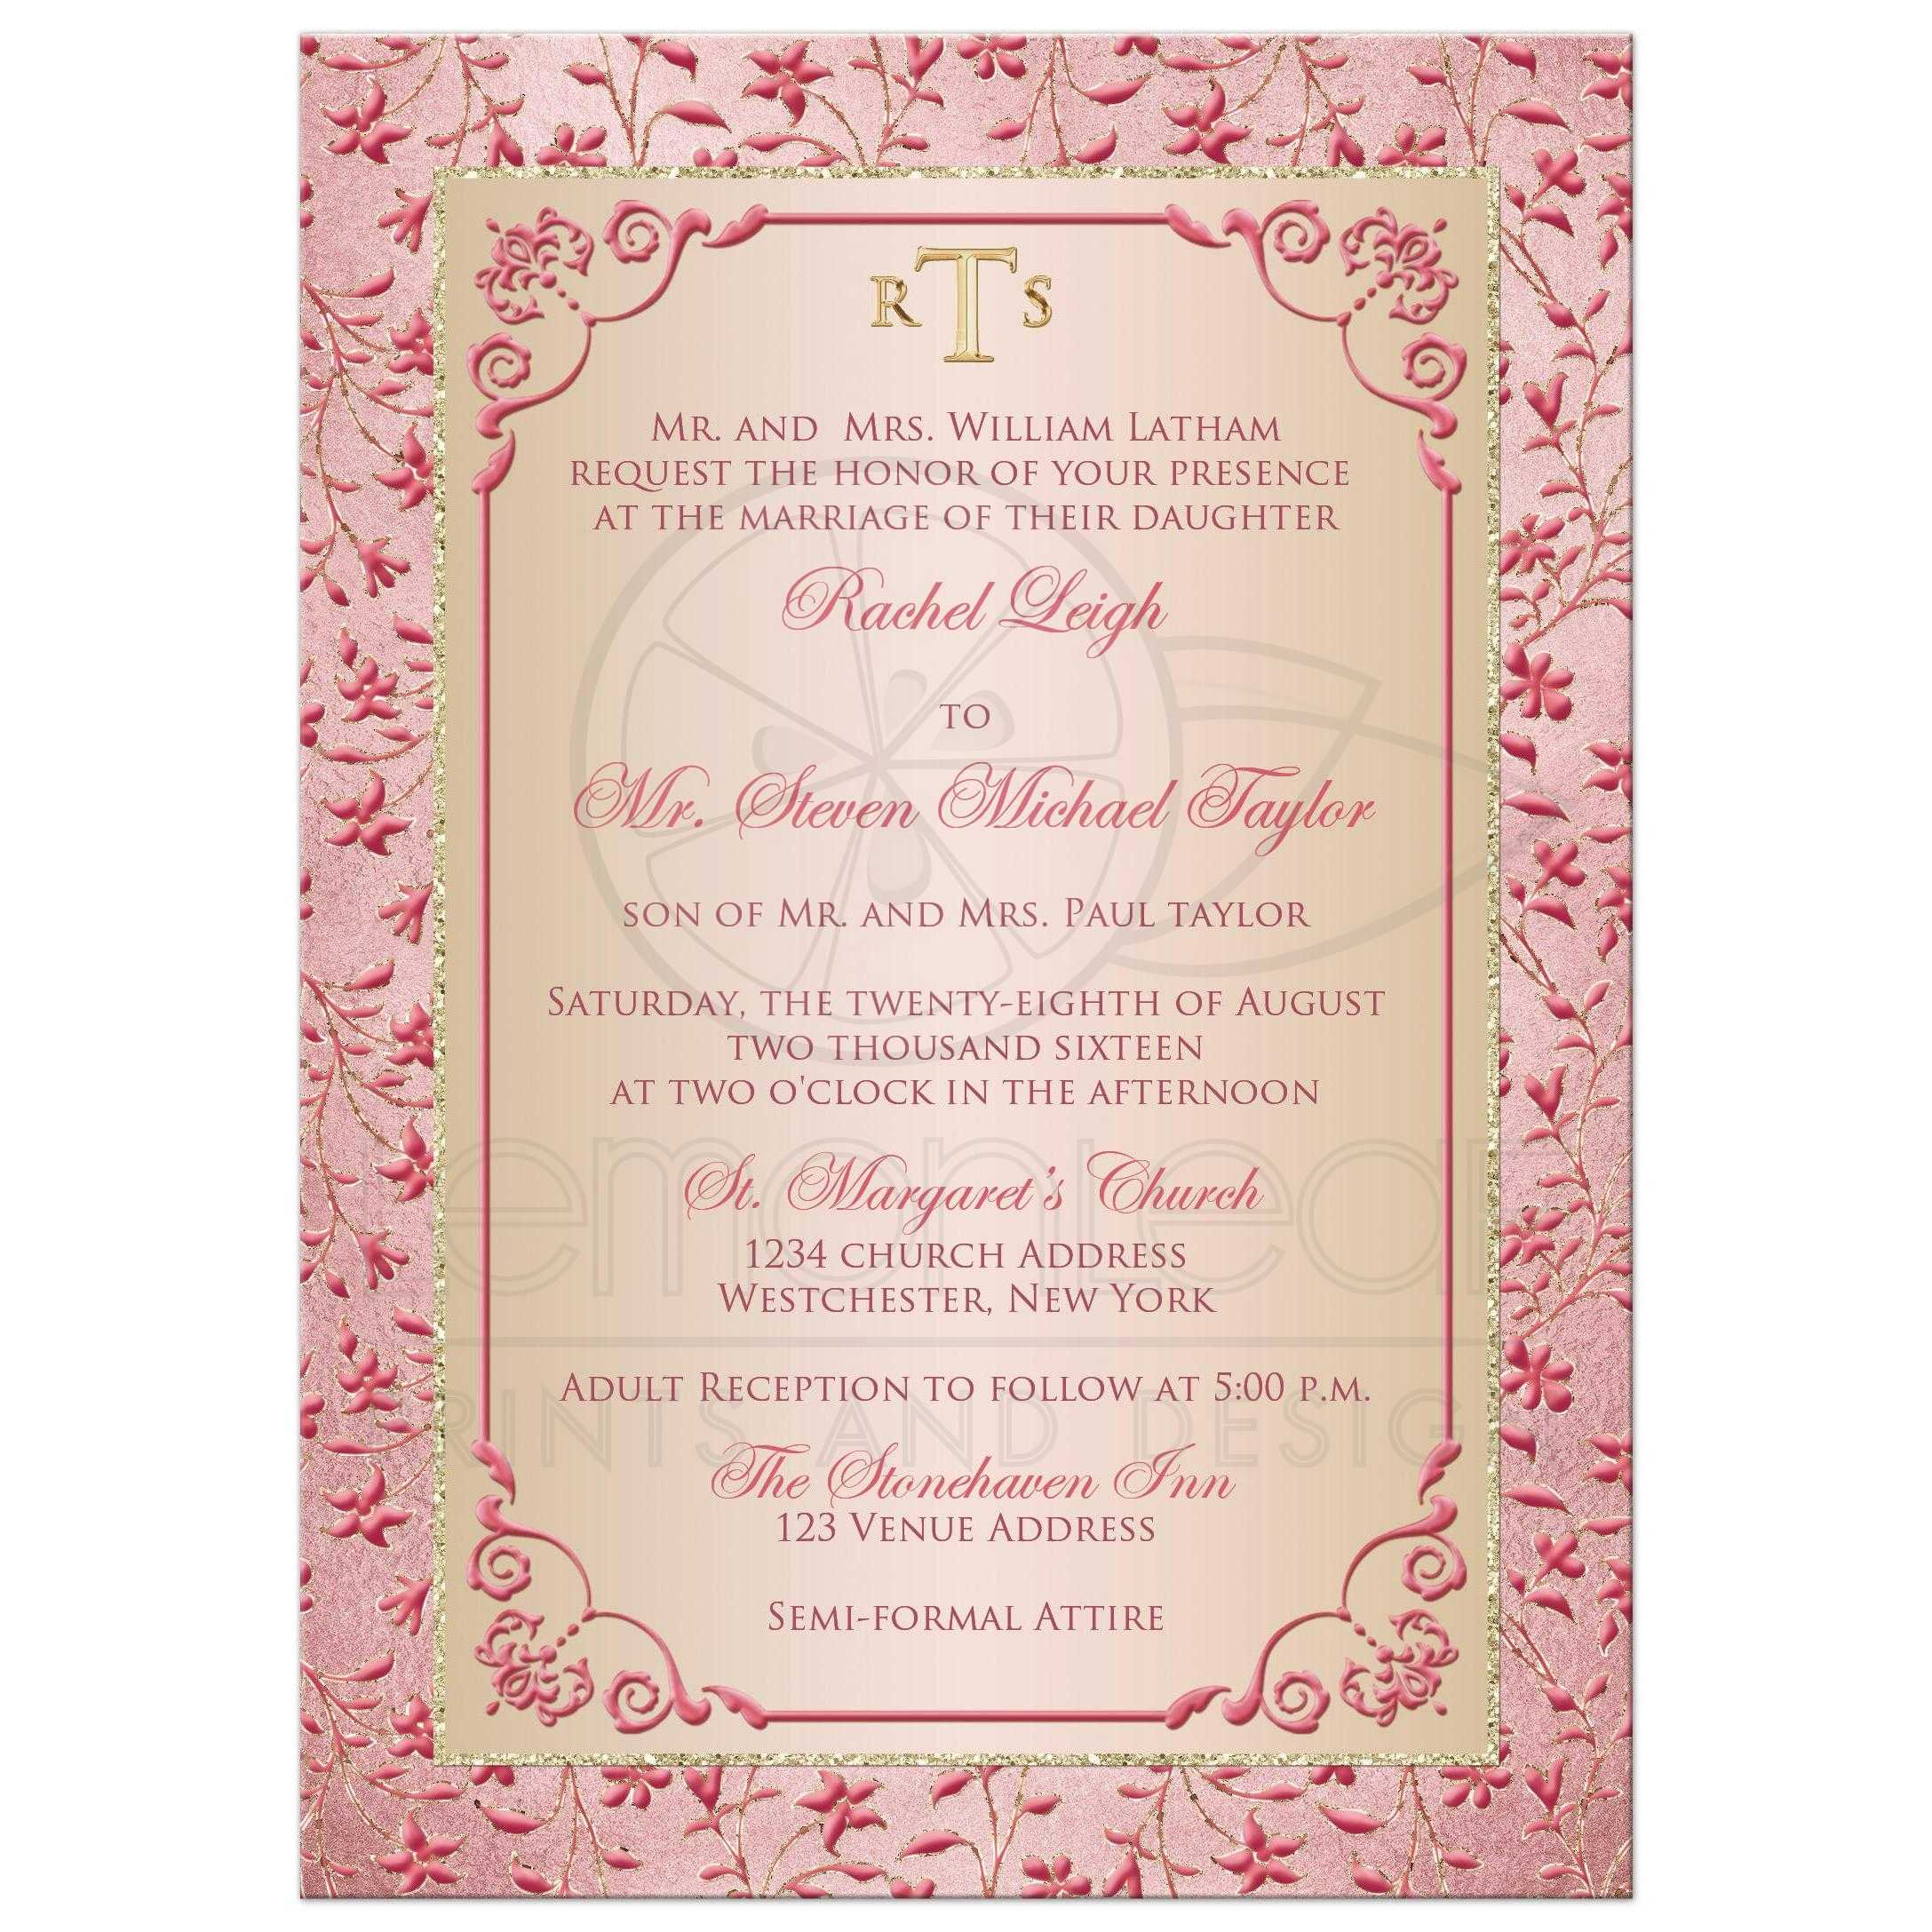 Monogrammed Wedding Invitation Blush Pink Dusty Rose Champagne